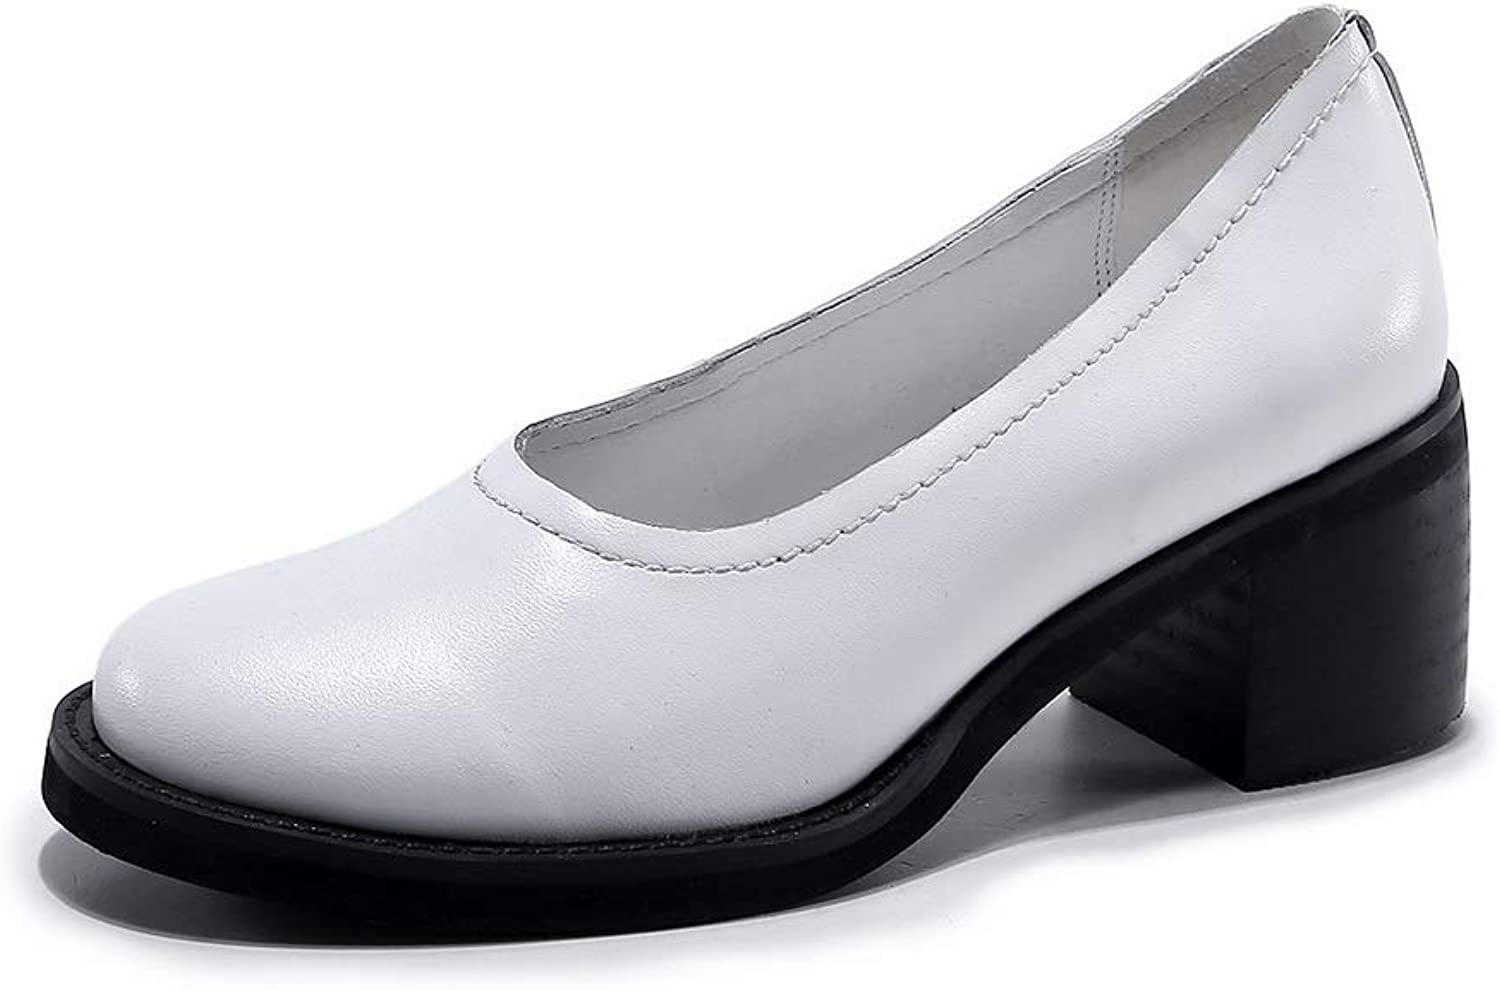 1TO9 Womens Travel Pumps-shoes Burnished Urethane Pumps shoes MMS06583